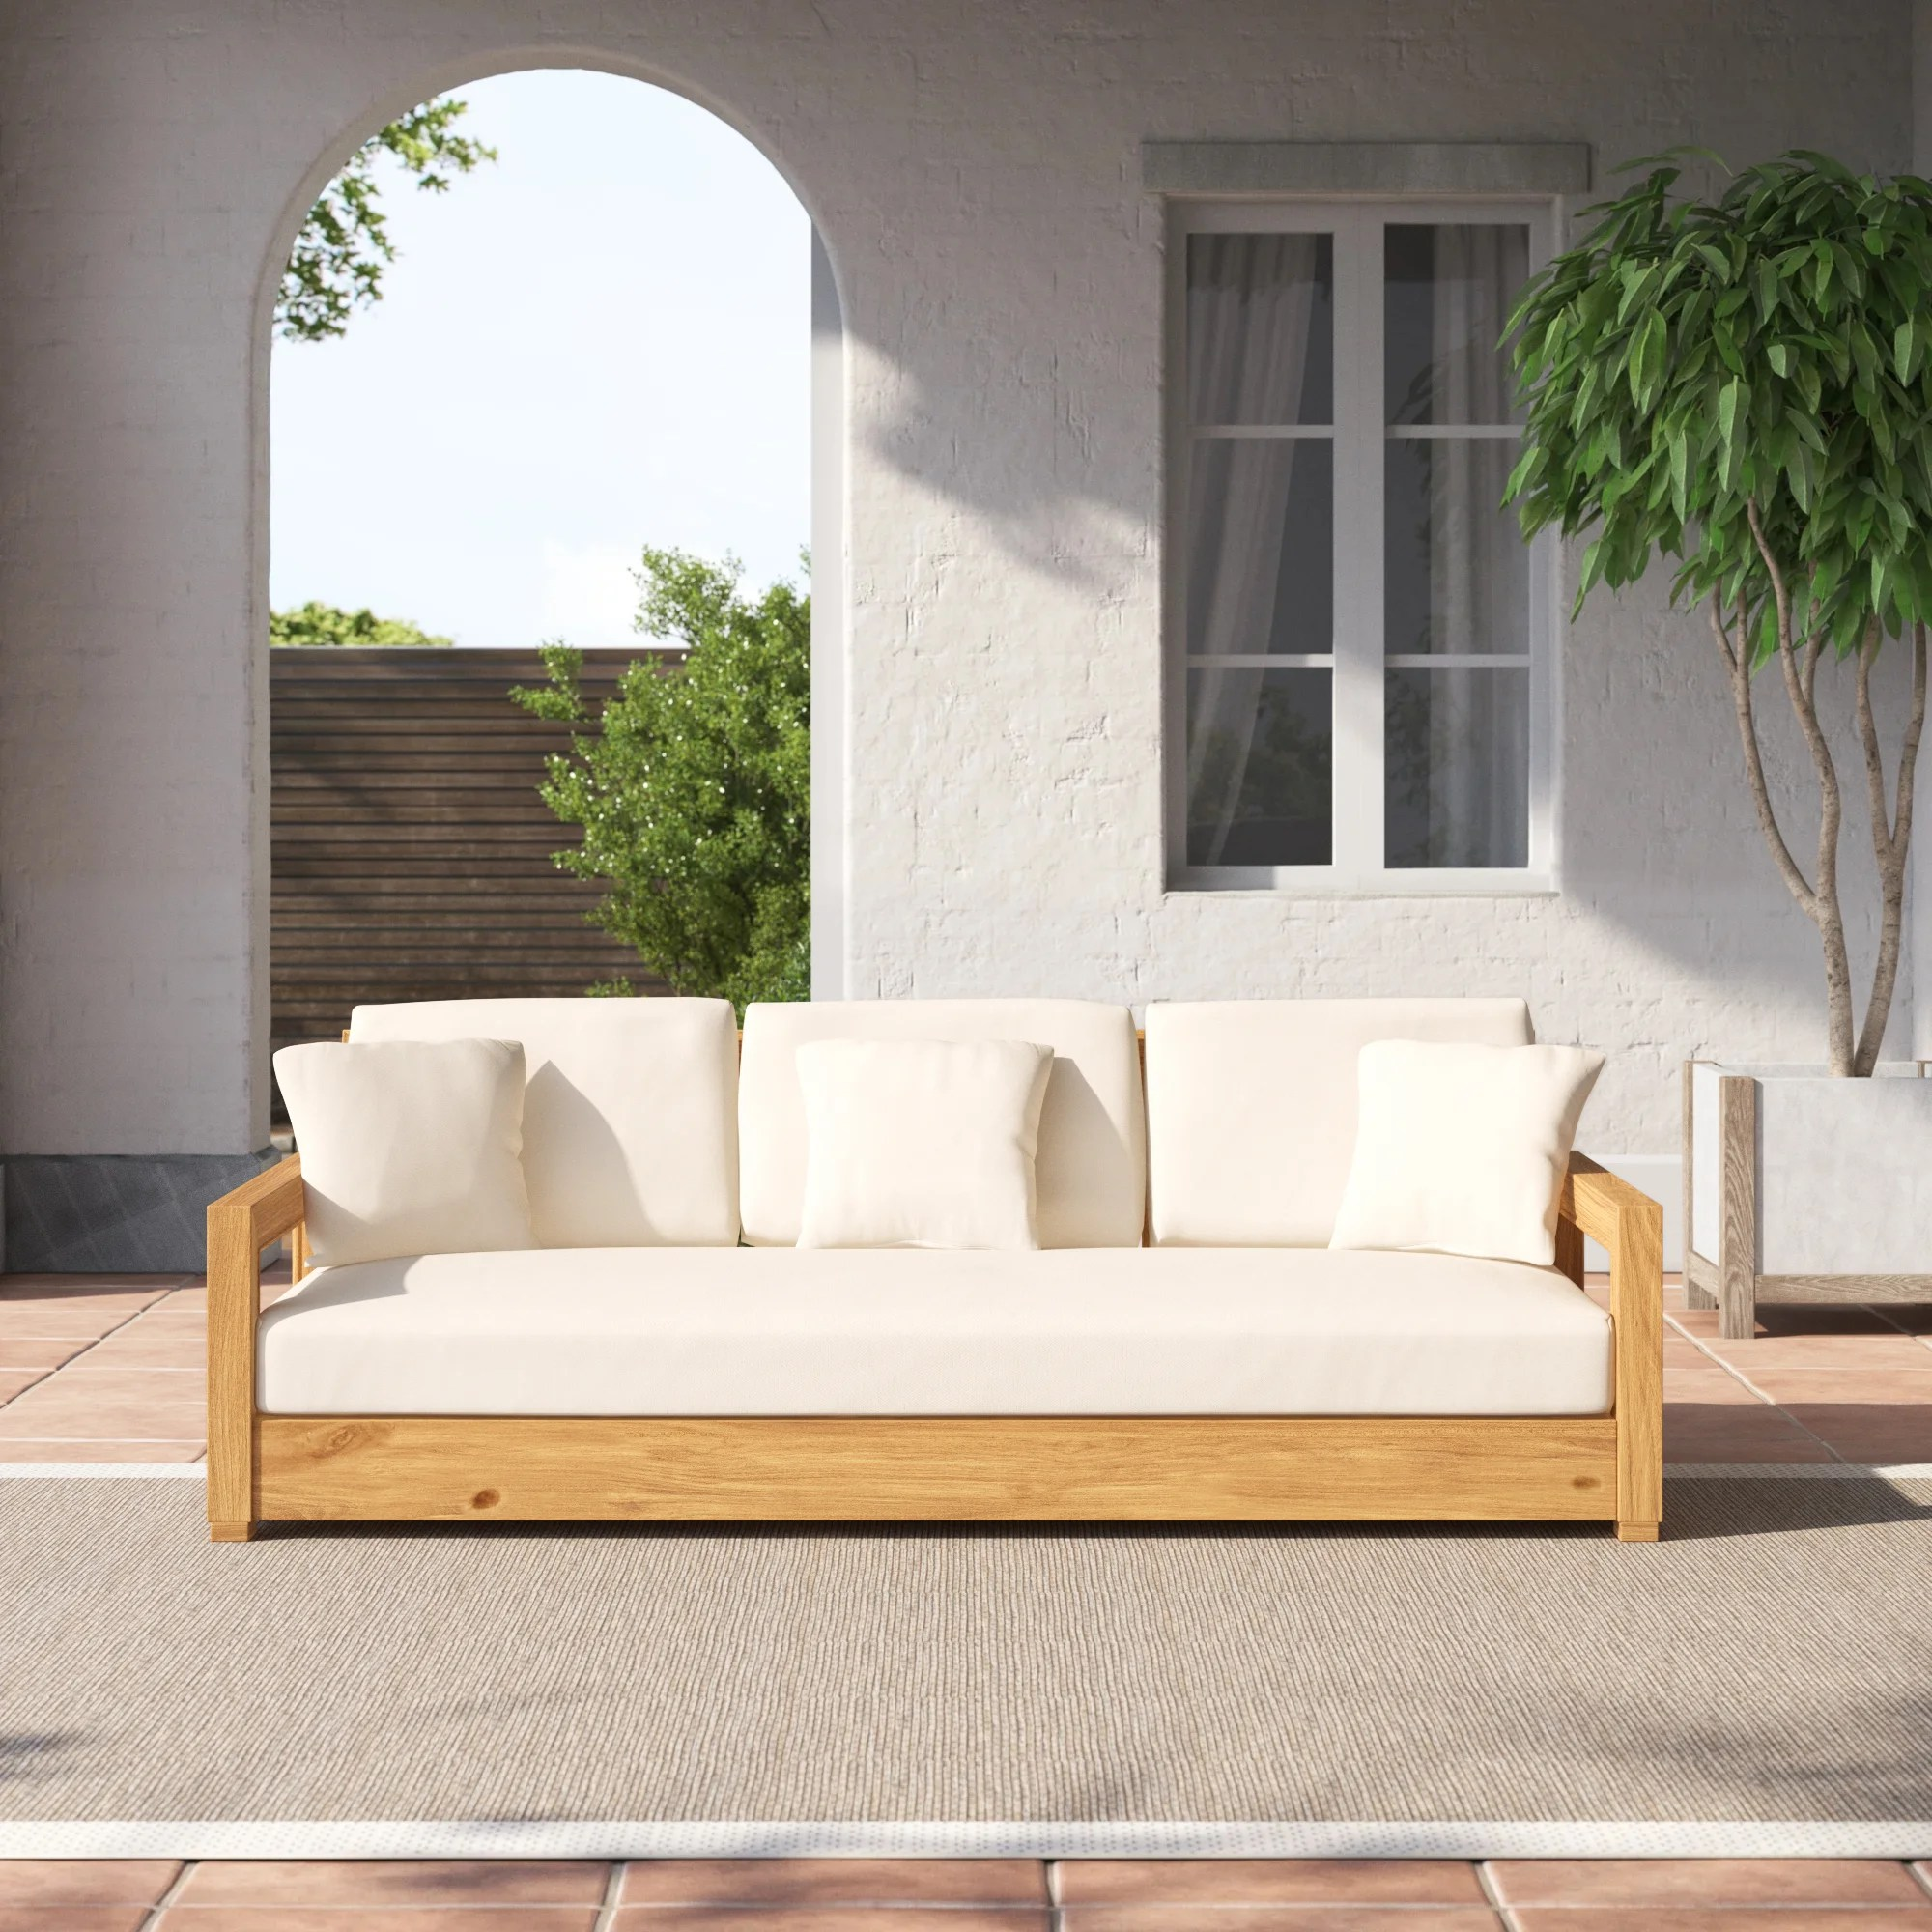 montford 76 55 wide outdoor teak patio sofa with cushions